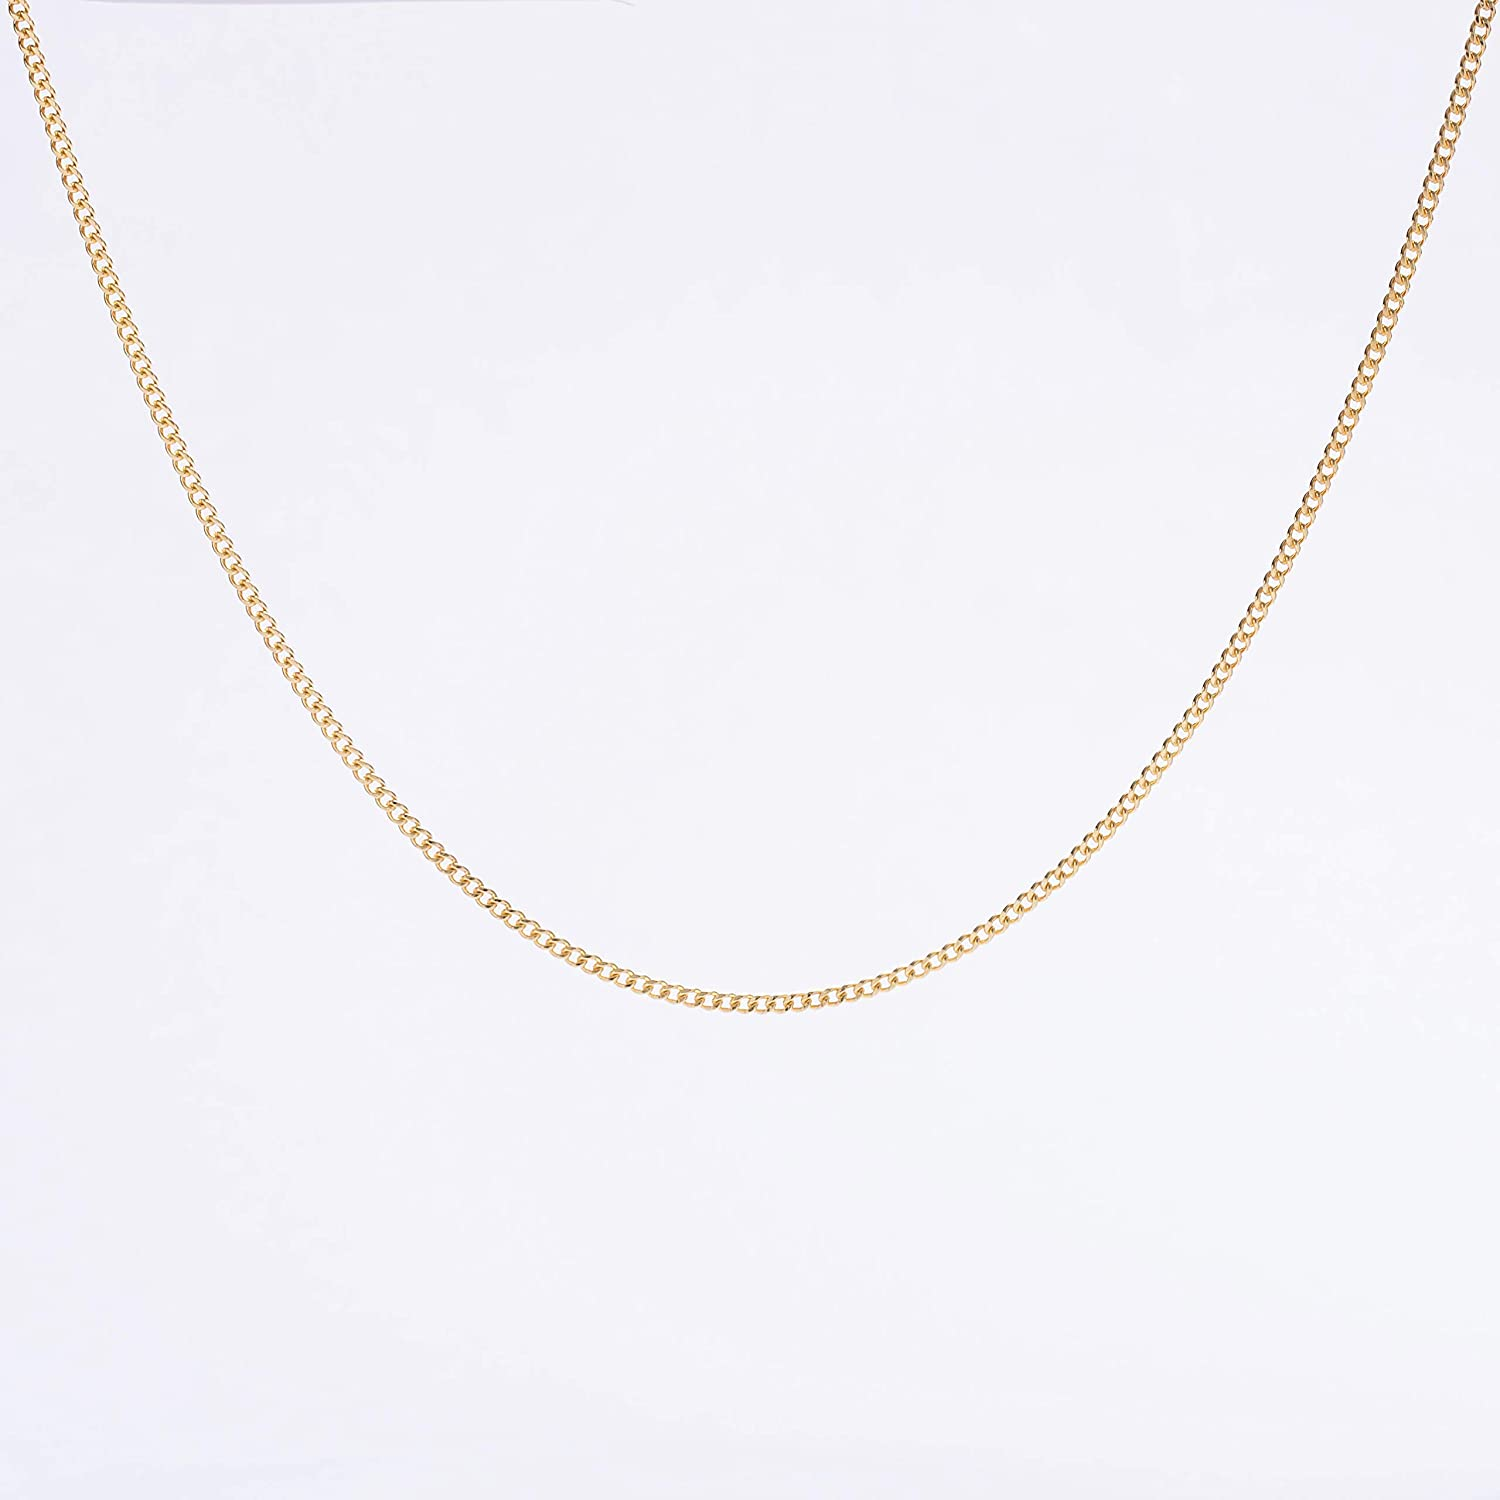 Amazon Com Graceful Rings Gix Minimalist Necklaces For Womens Choker Dainty Necklaces Silver Chain Minimalist Jewelry Cheap Simple Thick Short Gold Plated Chain Necklace Styles Gan0009 G Handmade